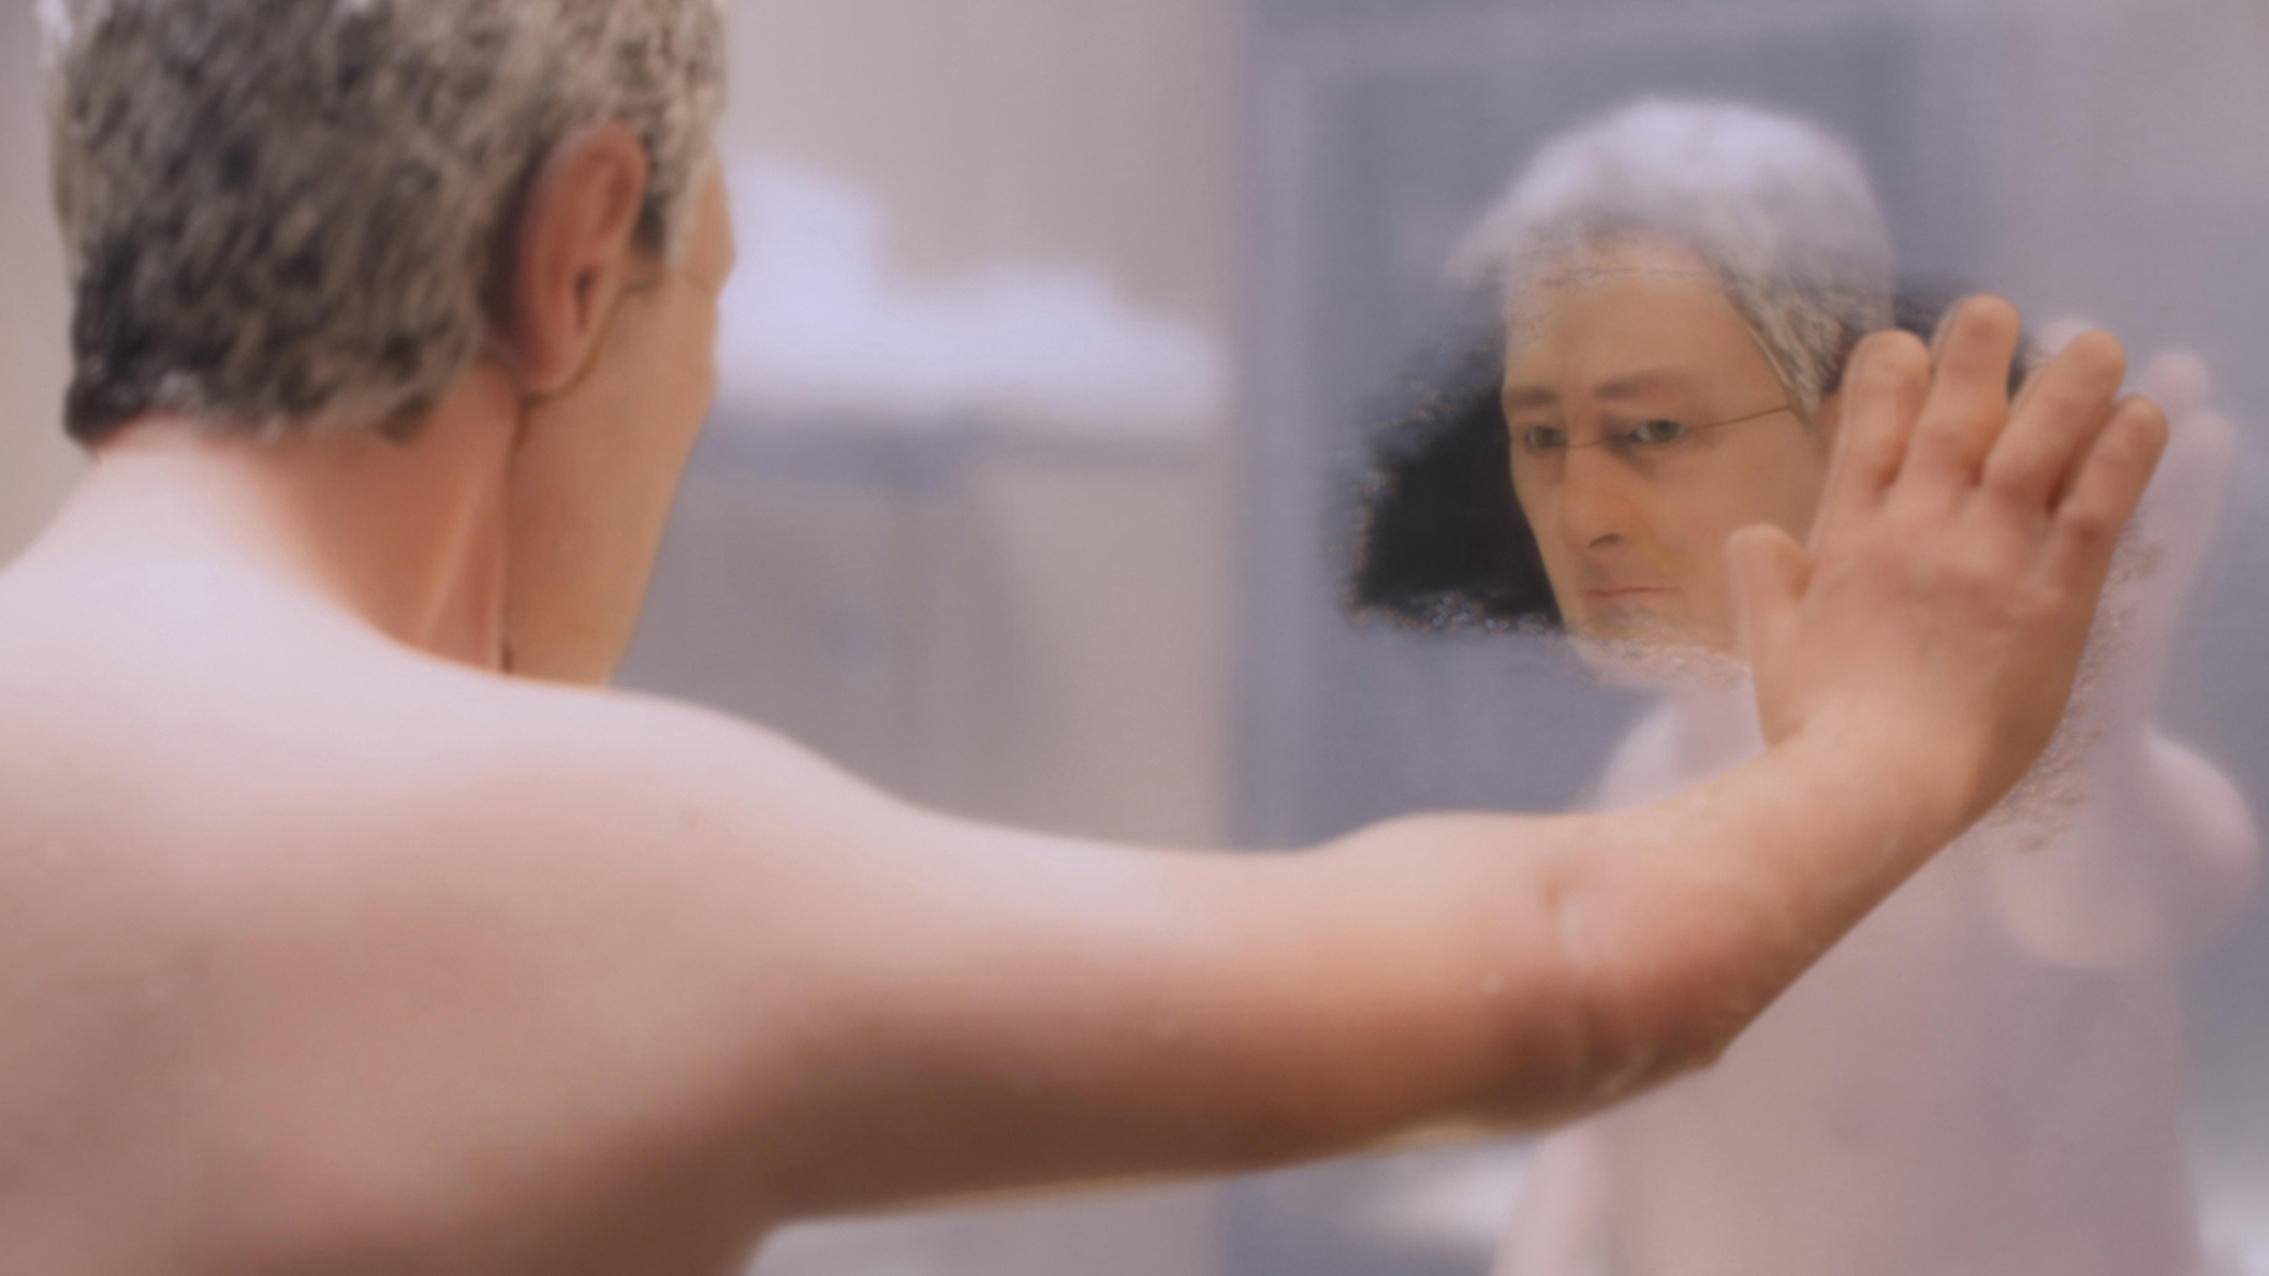 Anomalisa' Is A Charlie Kaufman Movie Featuring Puppets. Yes, It's Weird |  WFAE